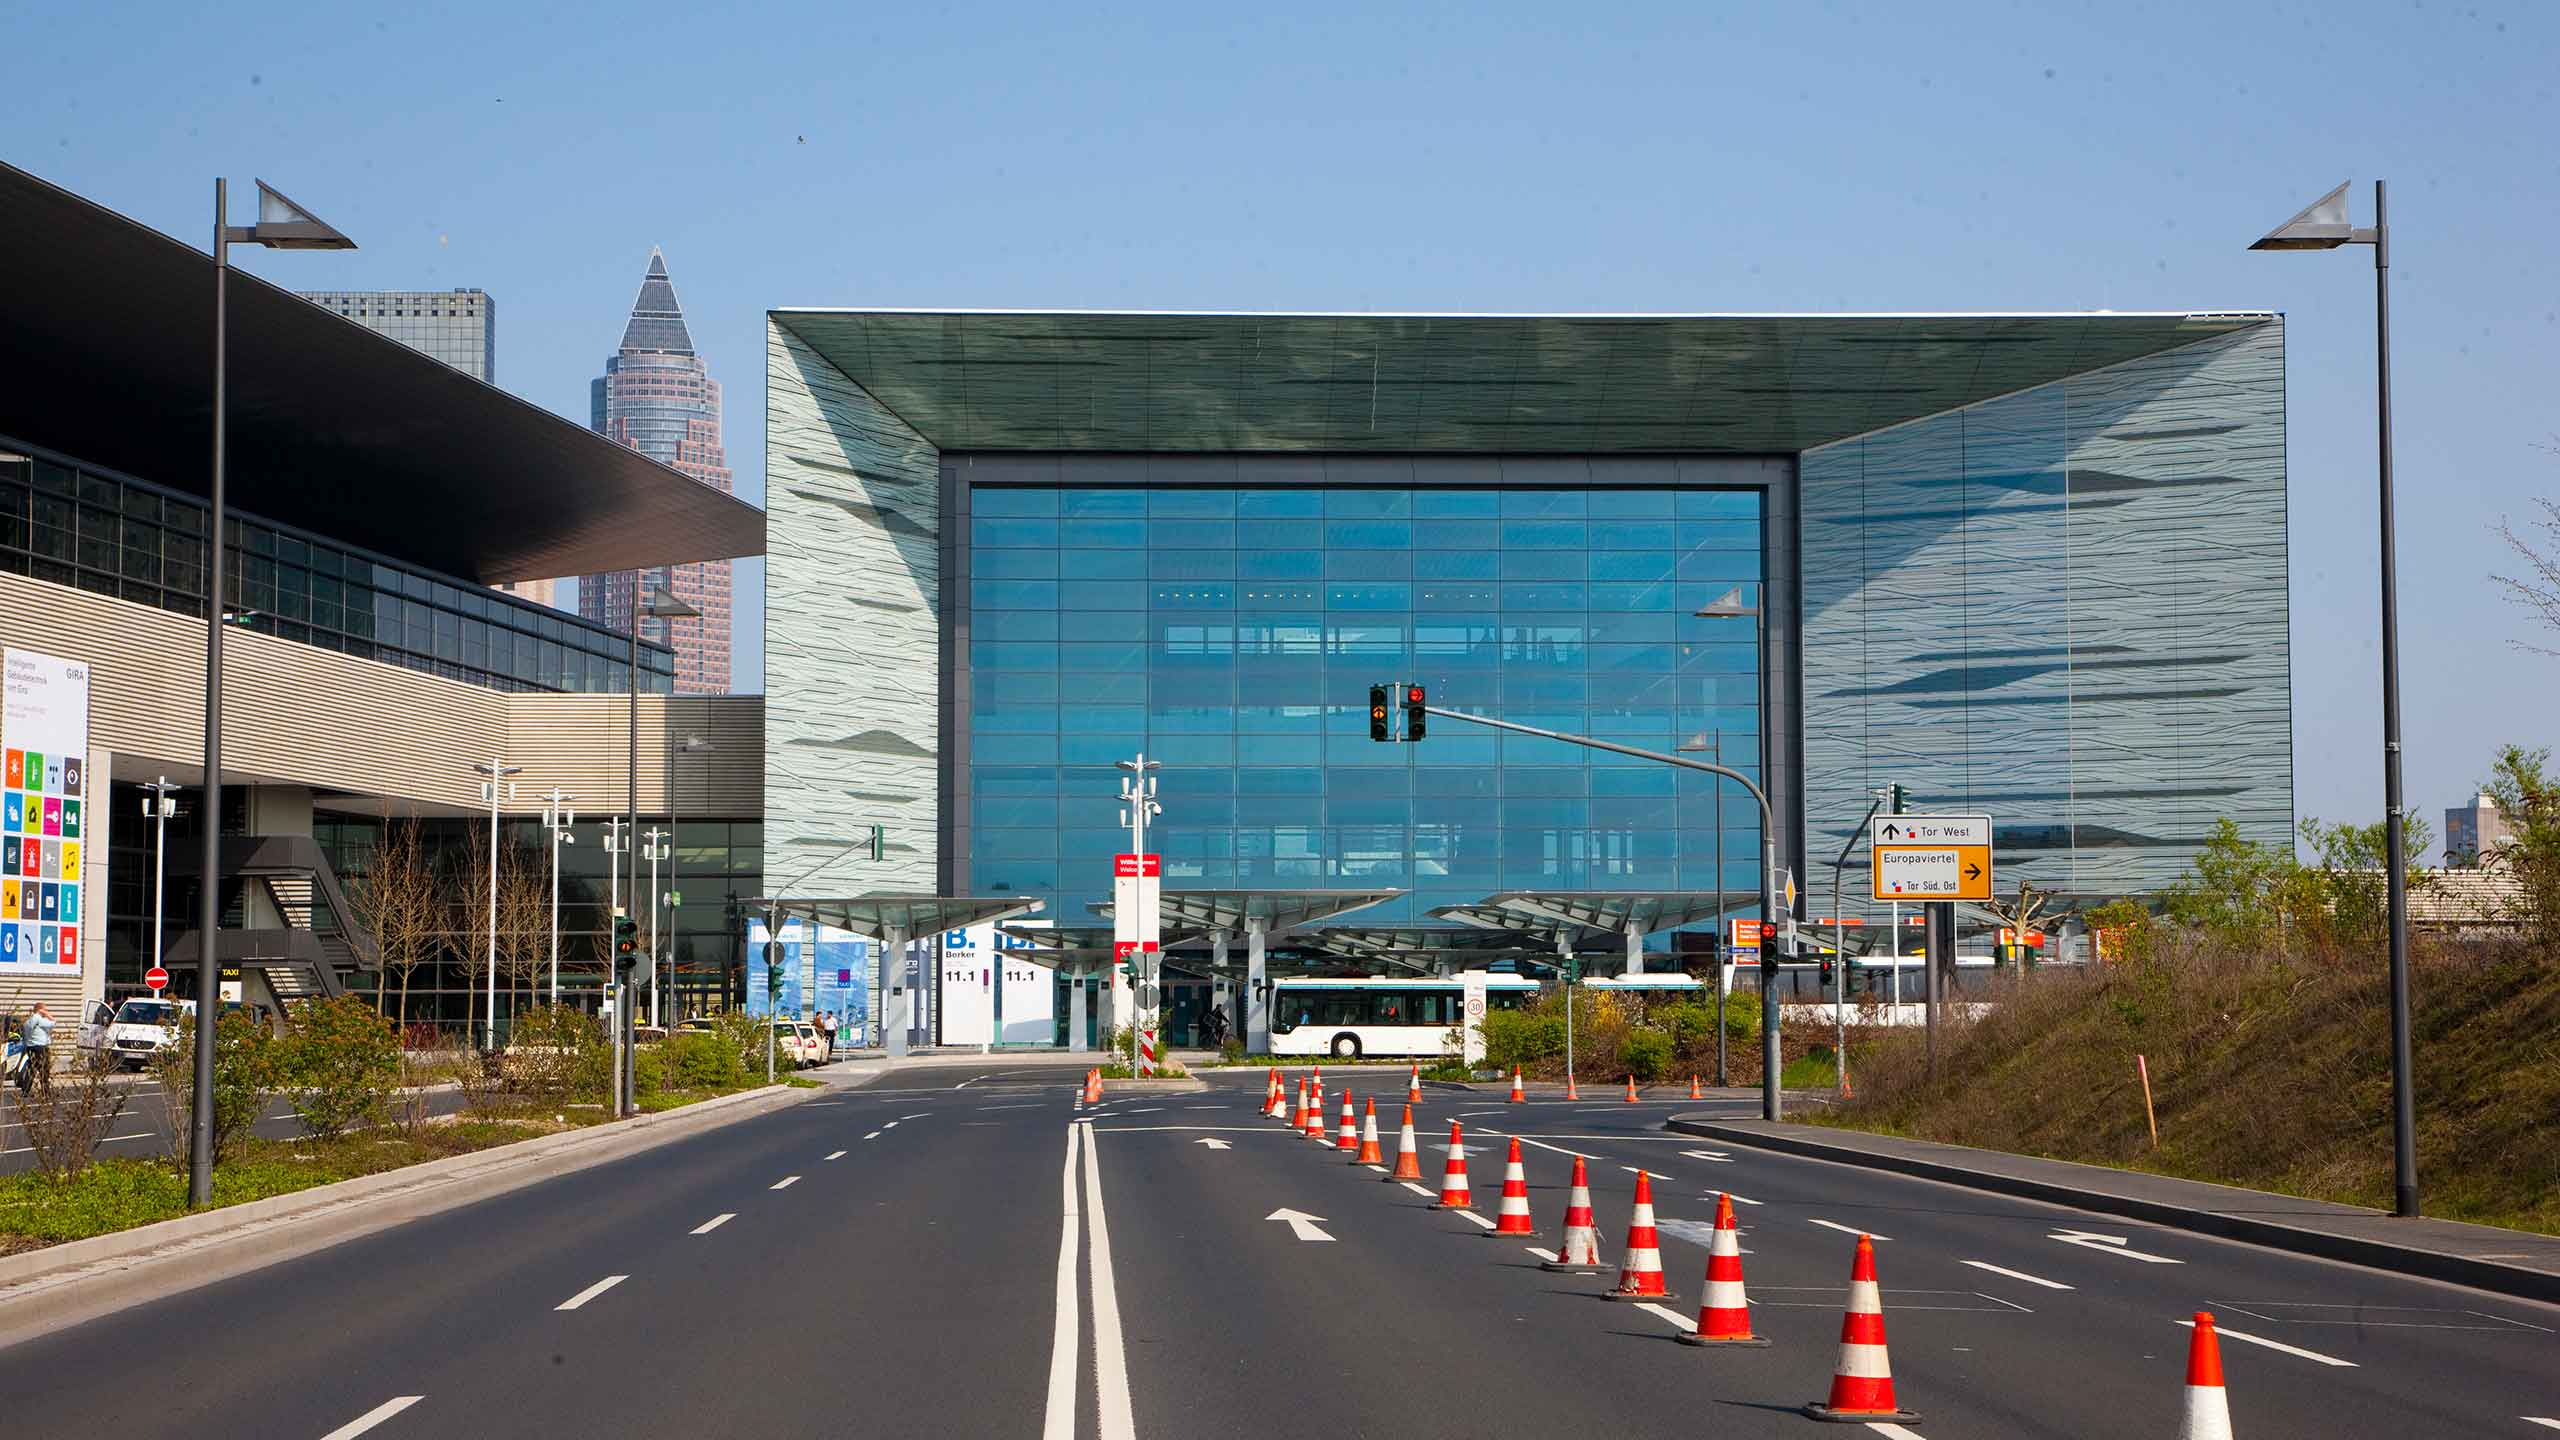 Access to the Frankfurt Exhibition Center